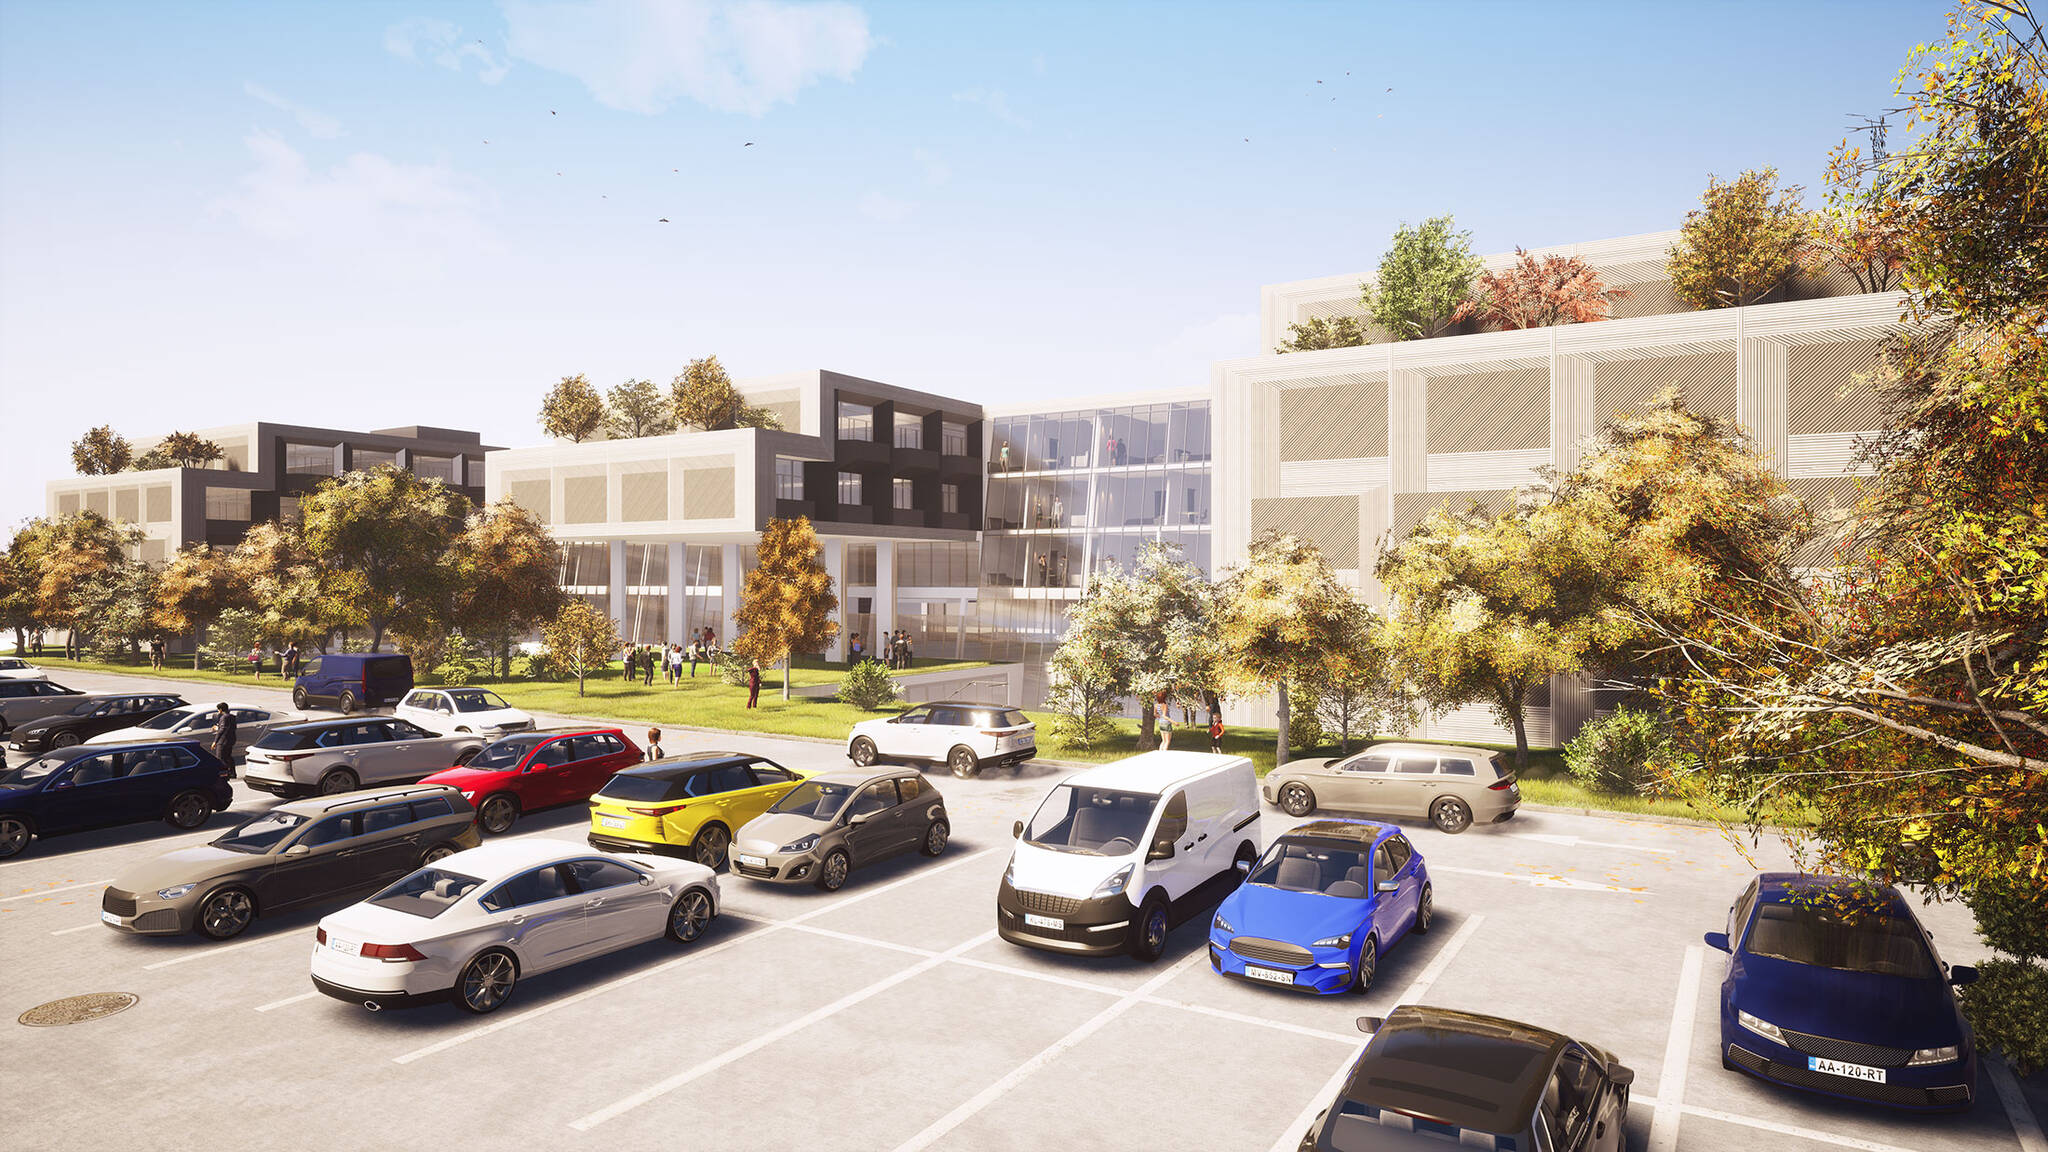 Parking of the Jericho Plaza Hotel project in Jericho, New York designed by the architecture studio Danny Forster & Architecture